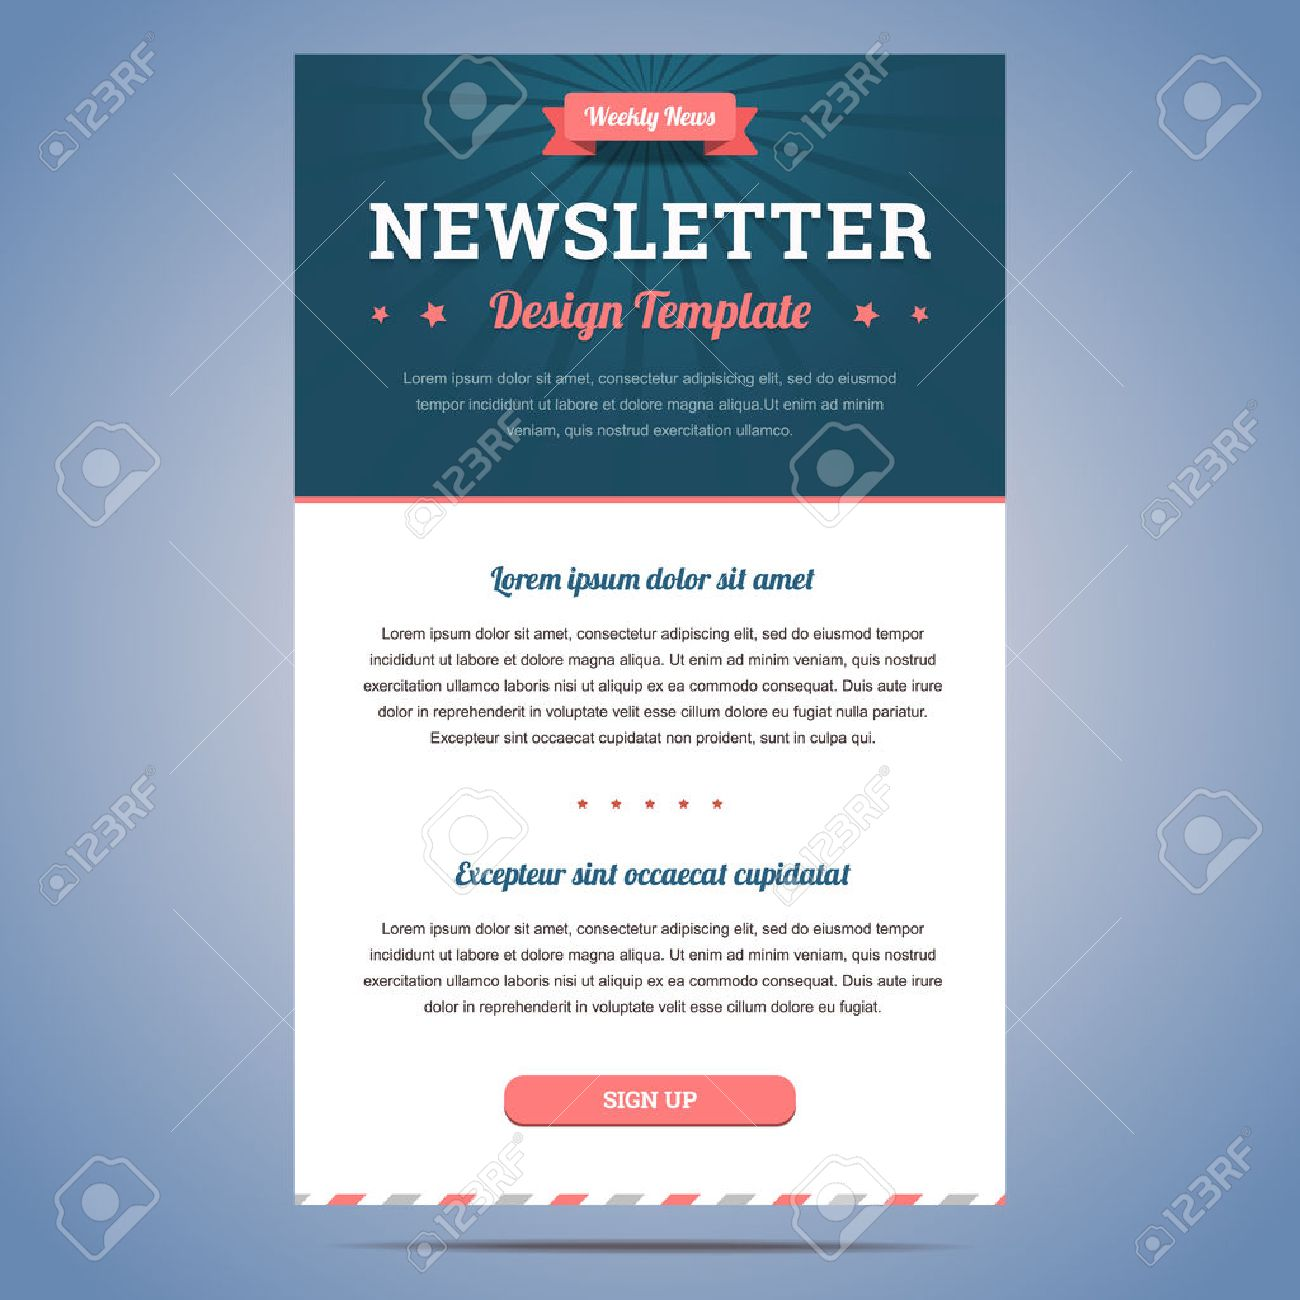 newsletter design template for weekly company news with header